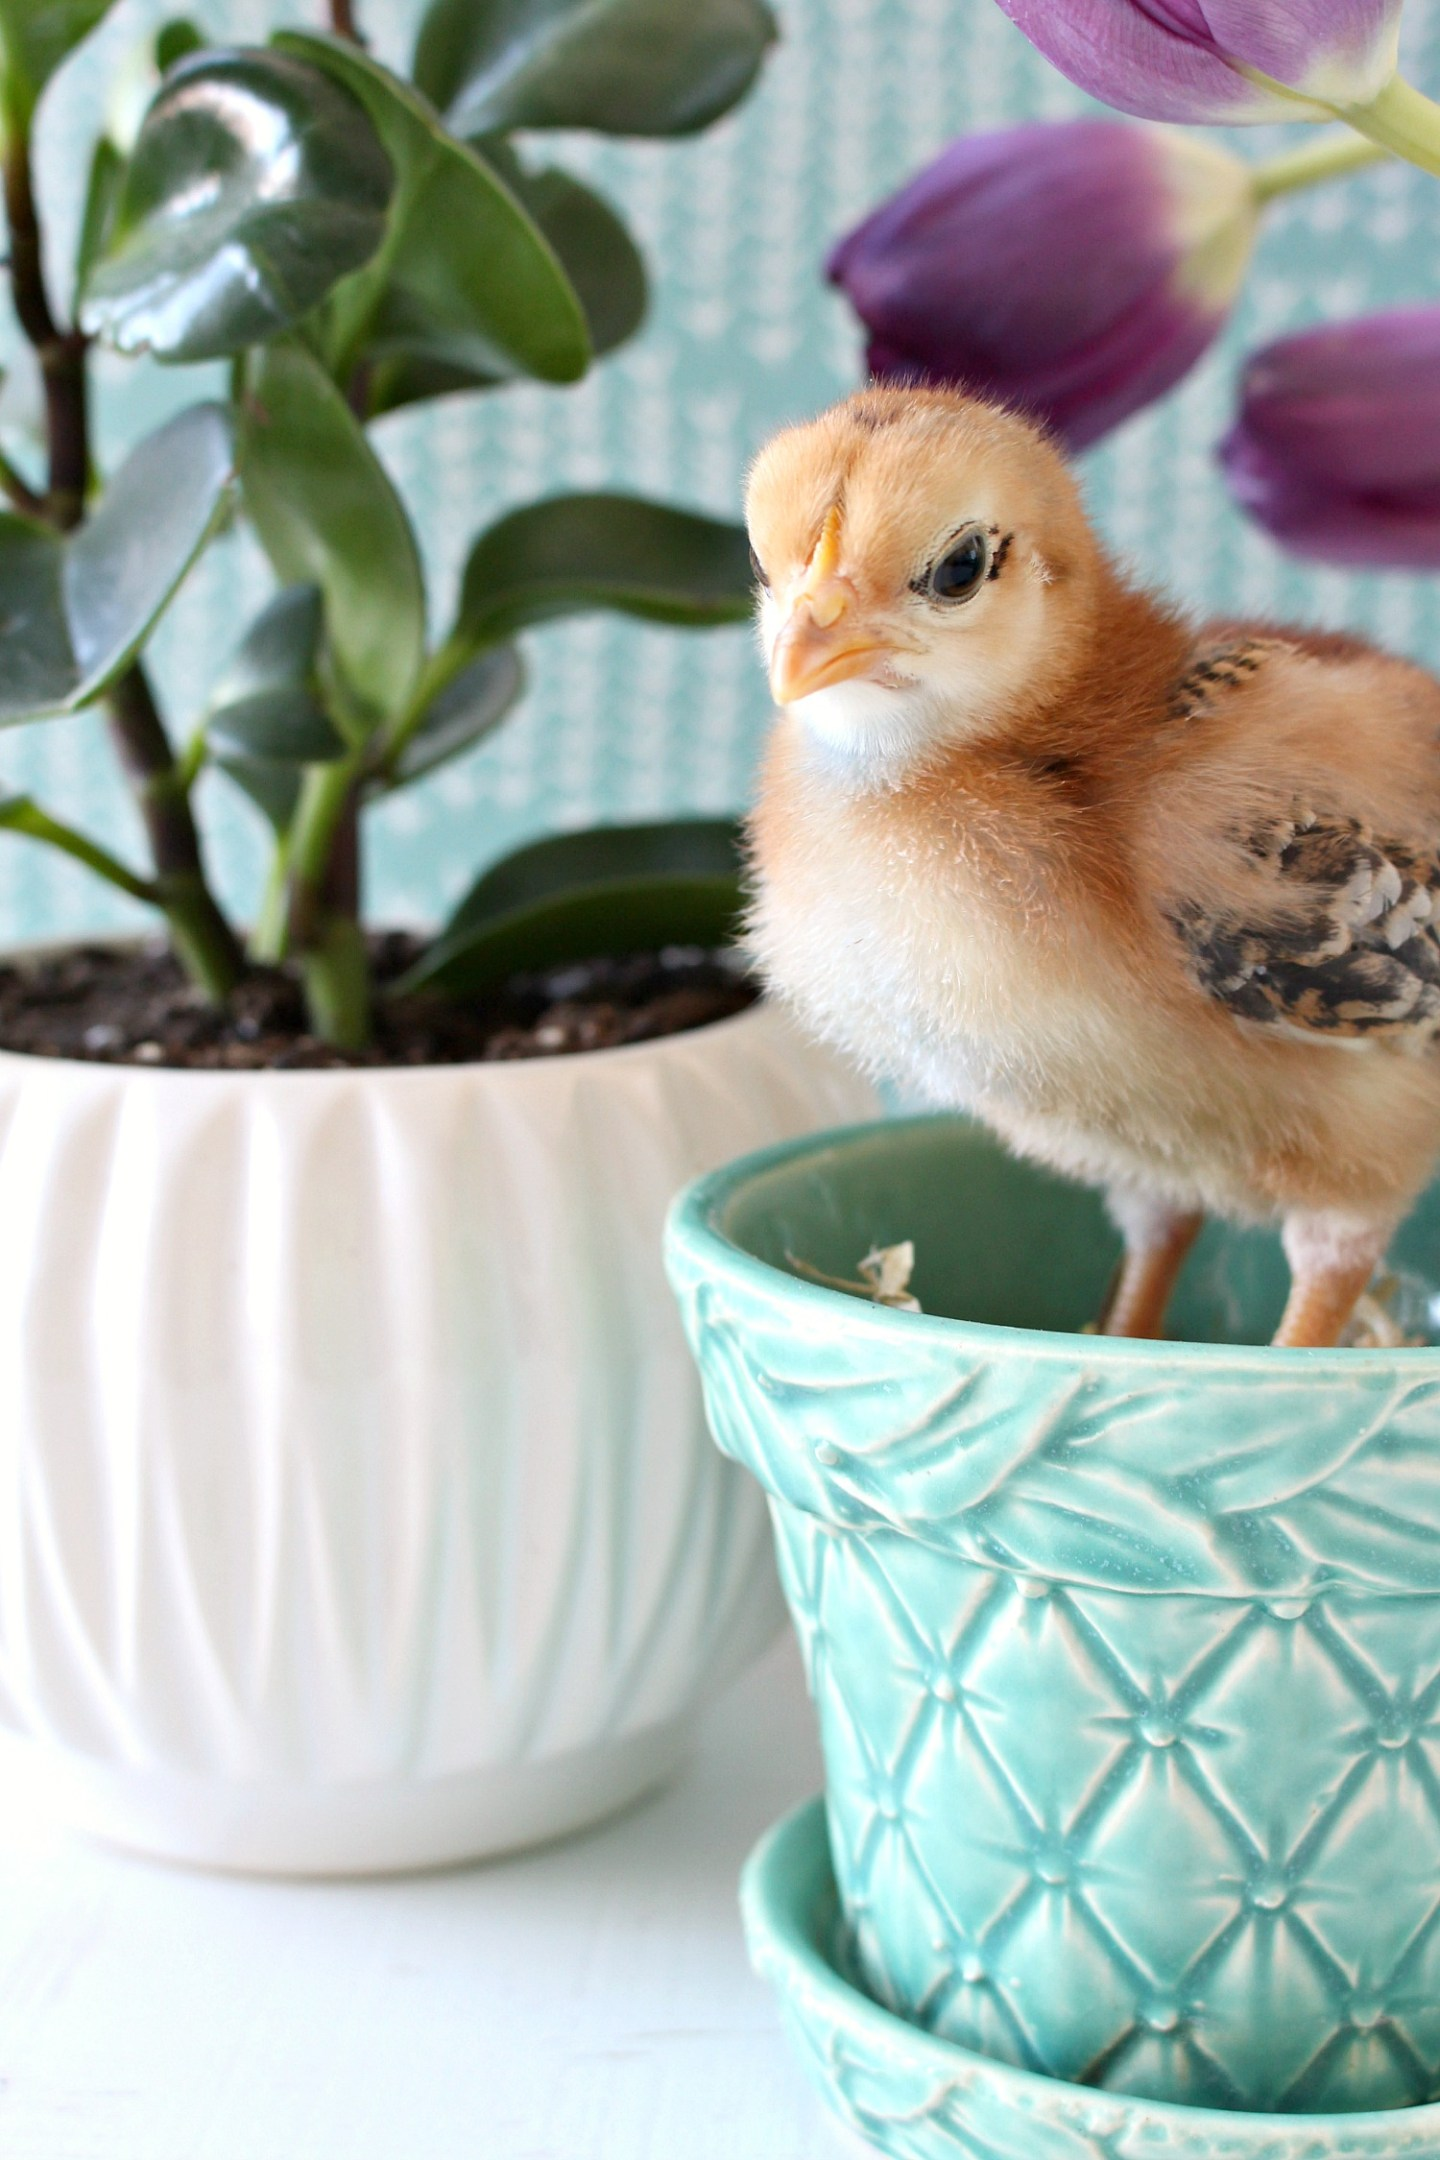 Spring Chick Standing in Turquoise Planter